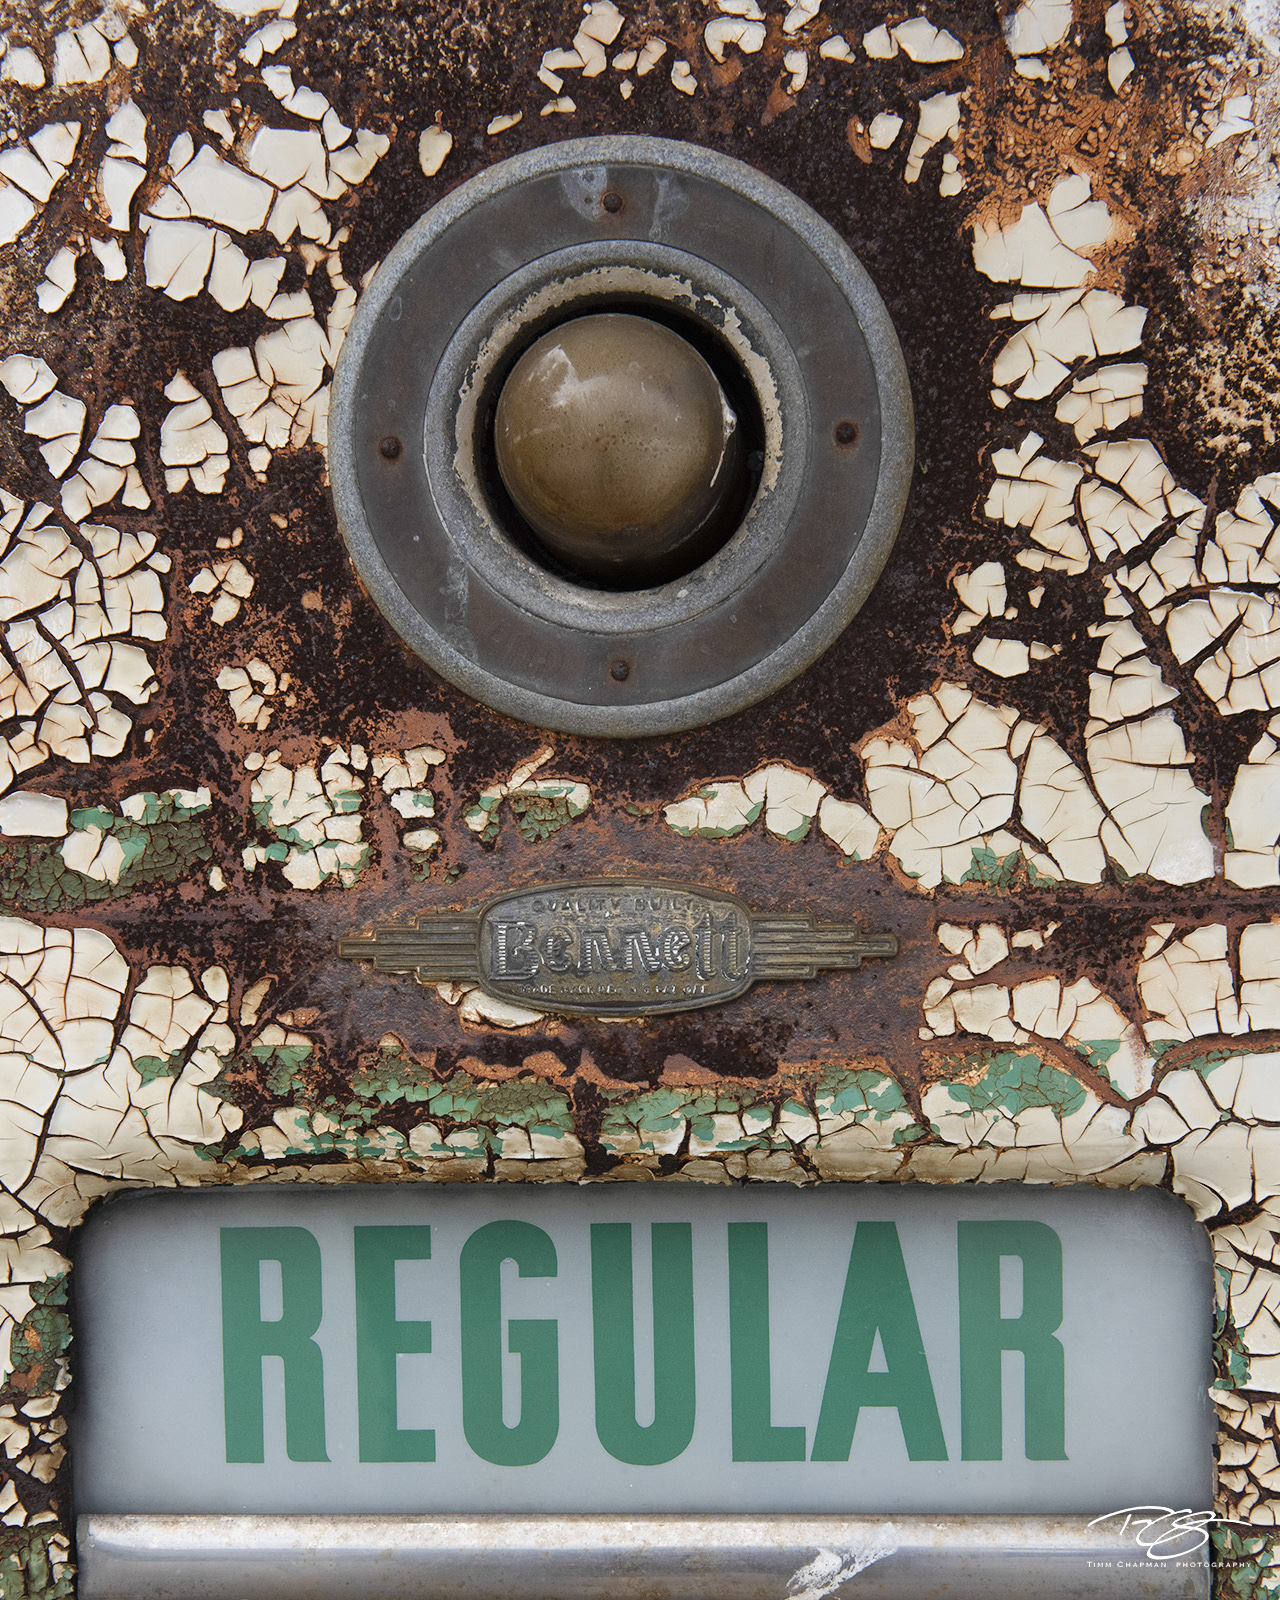 ​gas pump, fuel pump, petrol, peeling paint, gas station, fueling station, abandoned, derelict, old, weathered, rust, rusty, rusted, regular, fuel, gasoline, photo